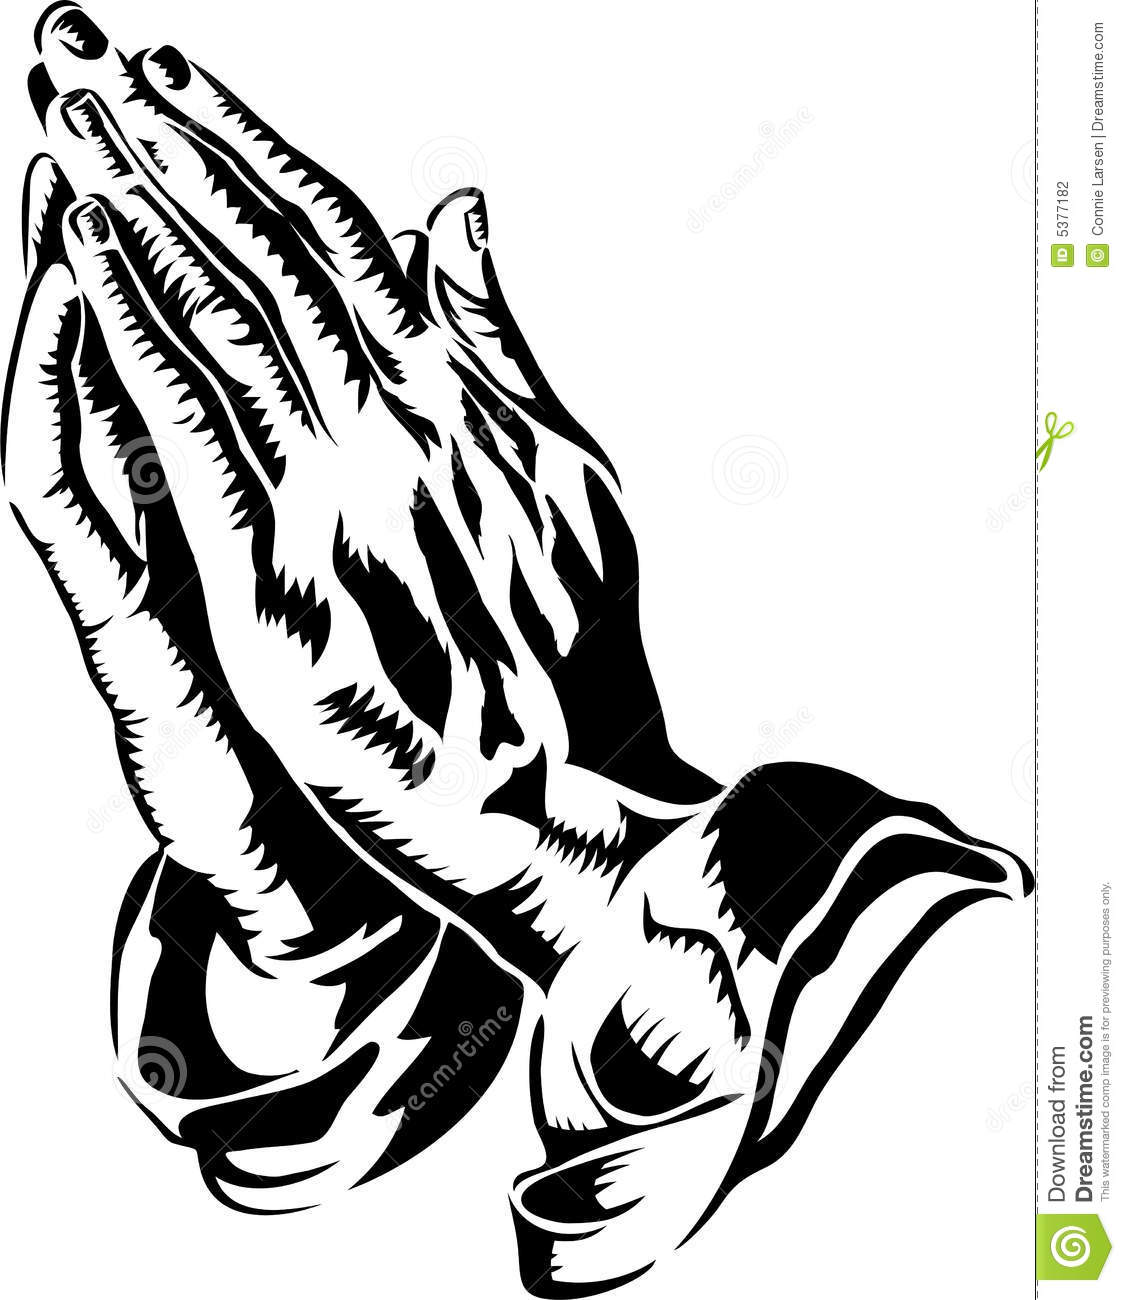 Praying Hands/eps stock vector. Illustration of drawings